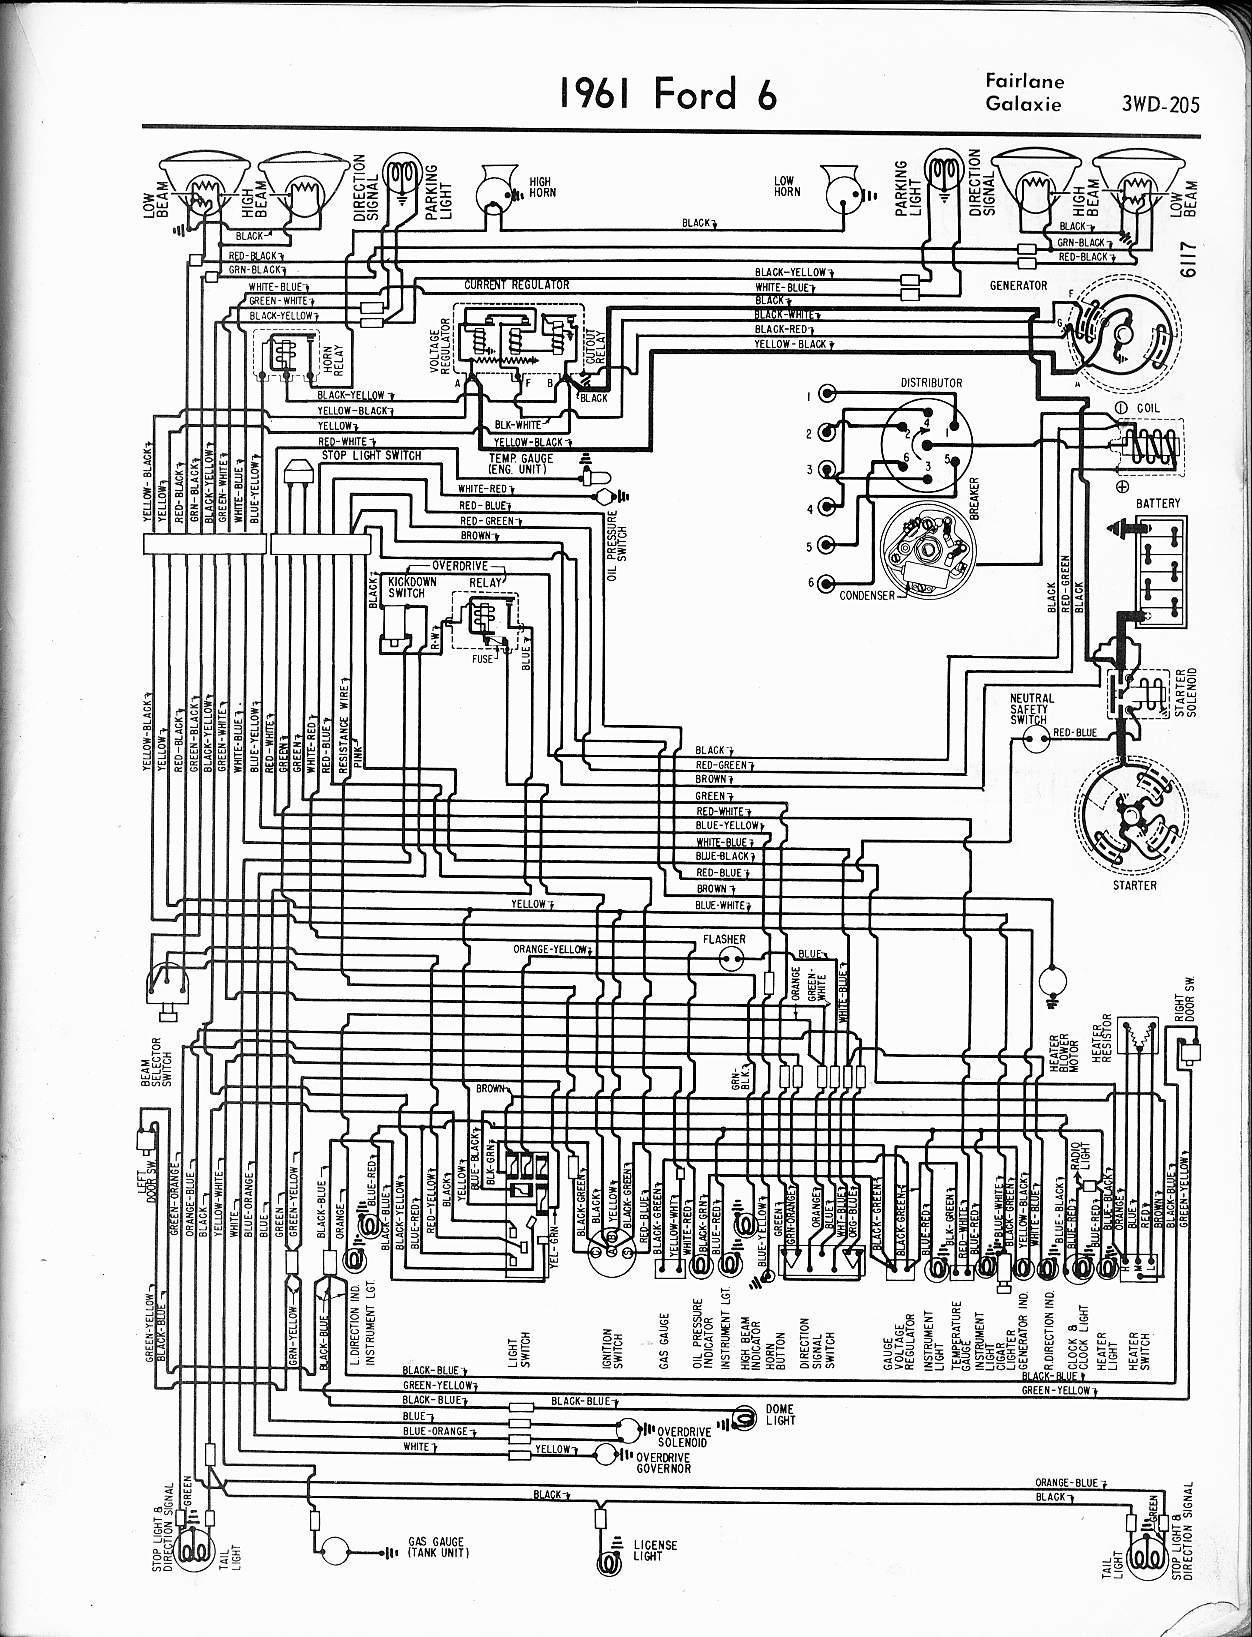 Vehicle Ignition Wiring Diagram : Car ford falcon ignition switch wiring diagram ranchero xg